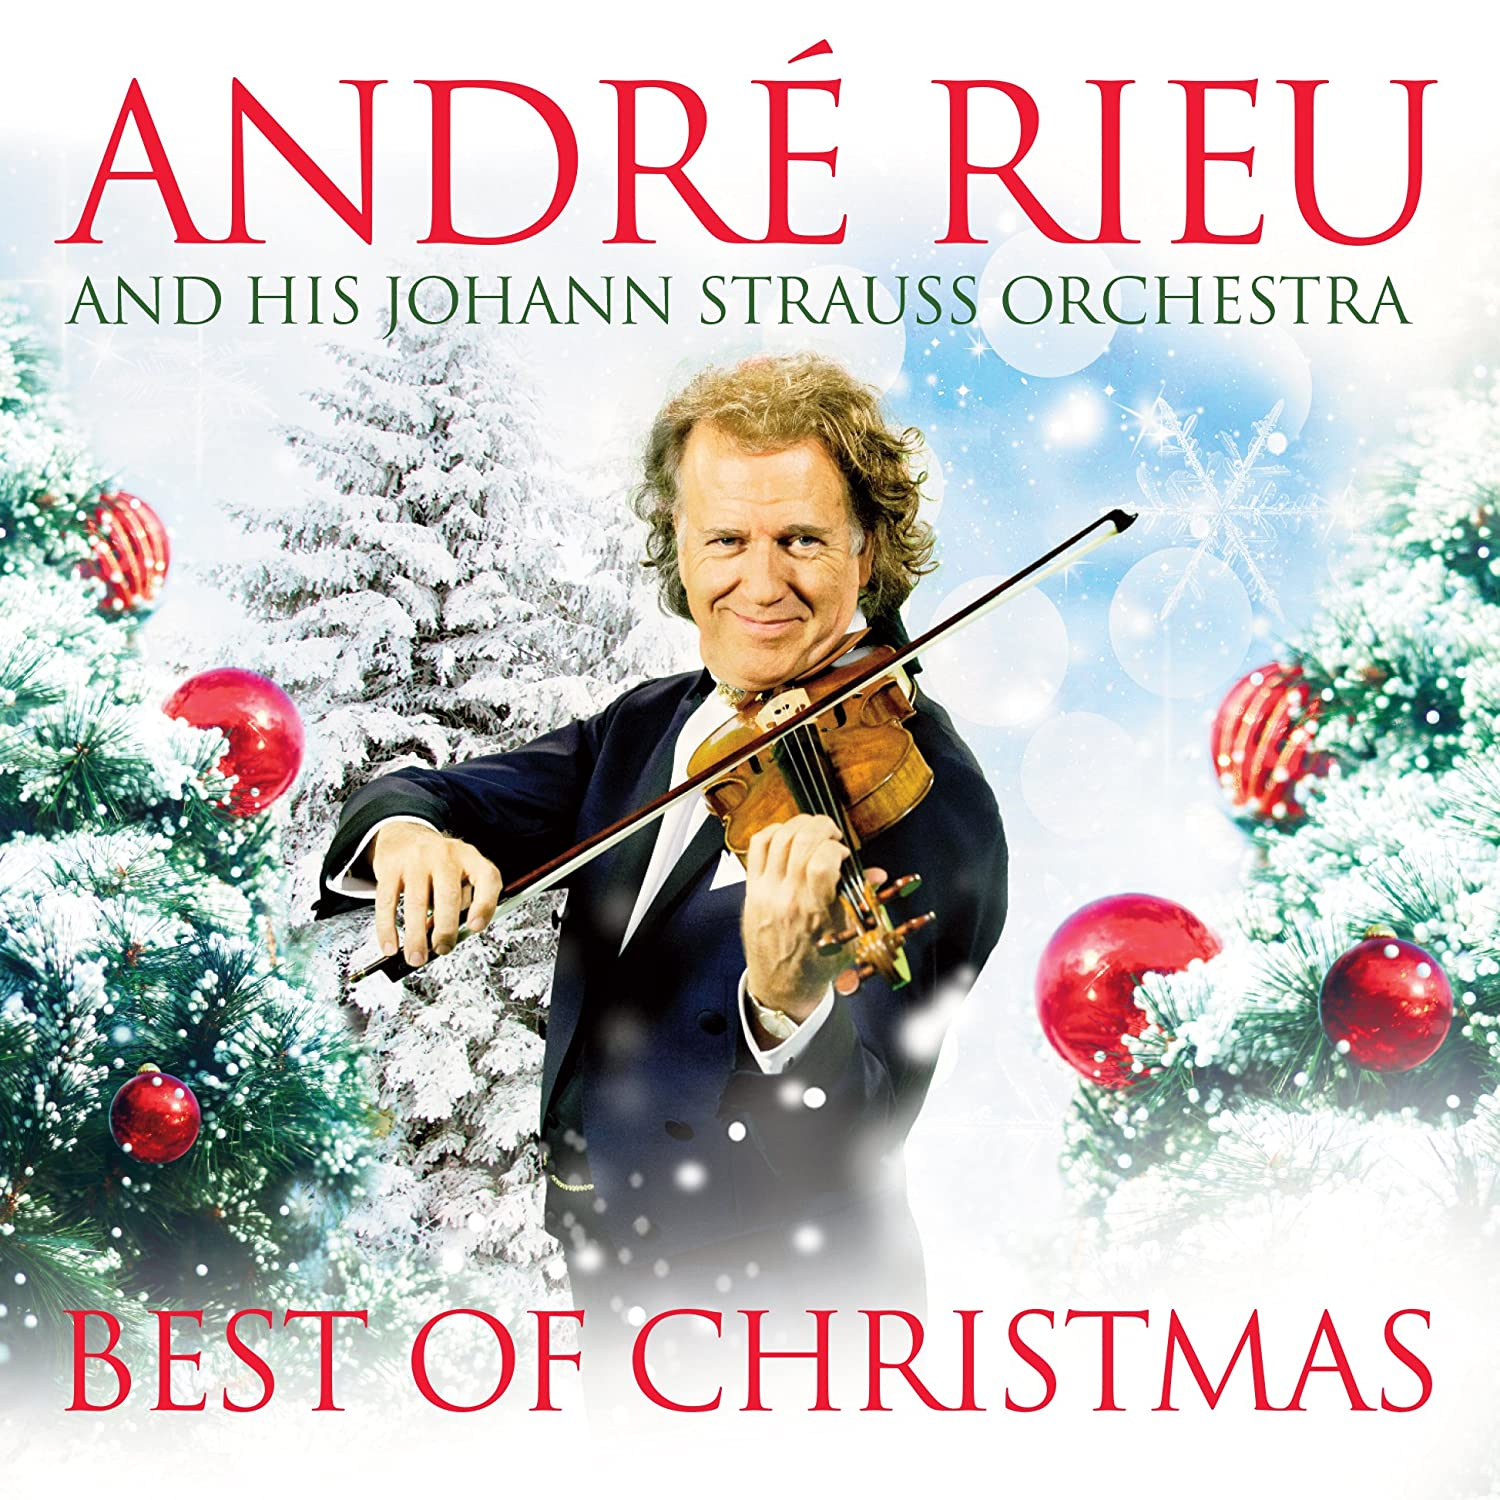 Best Of Christmas: Amazon.co.uk: Music